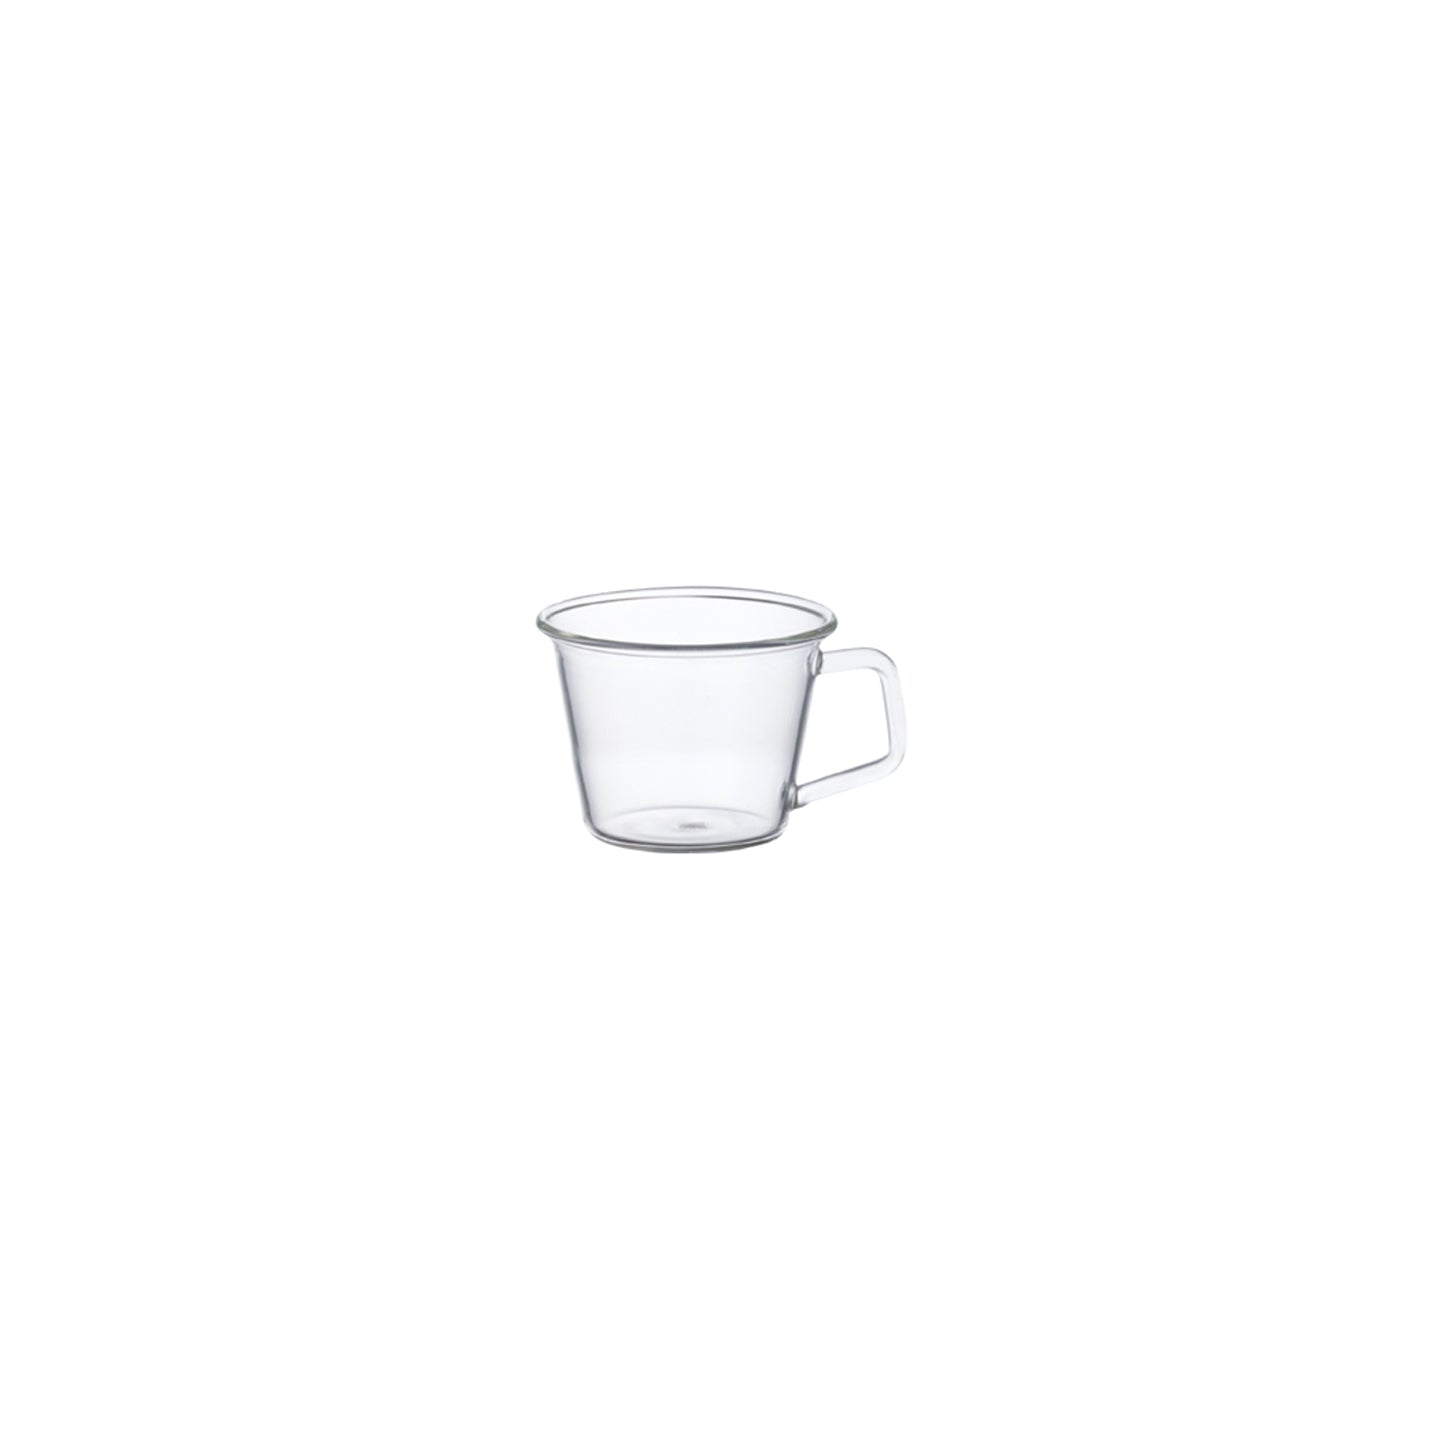 Kinto Cast Espresso Cup Glass (Pack of 4)